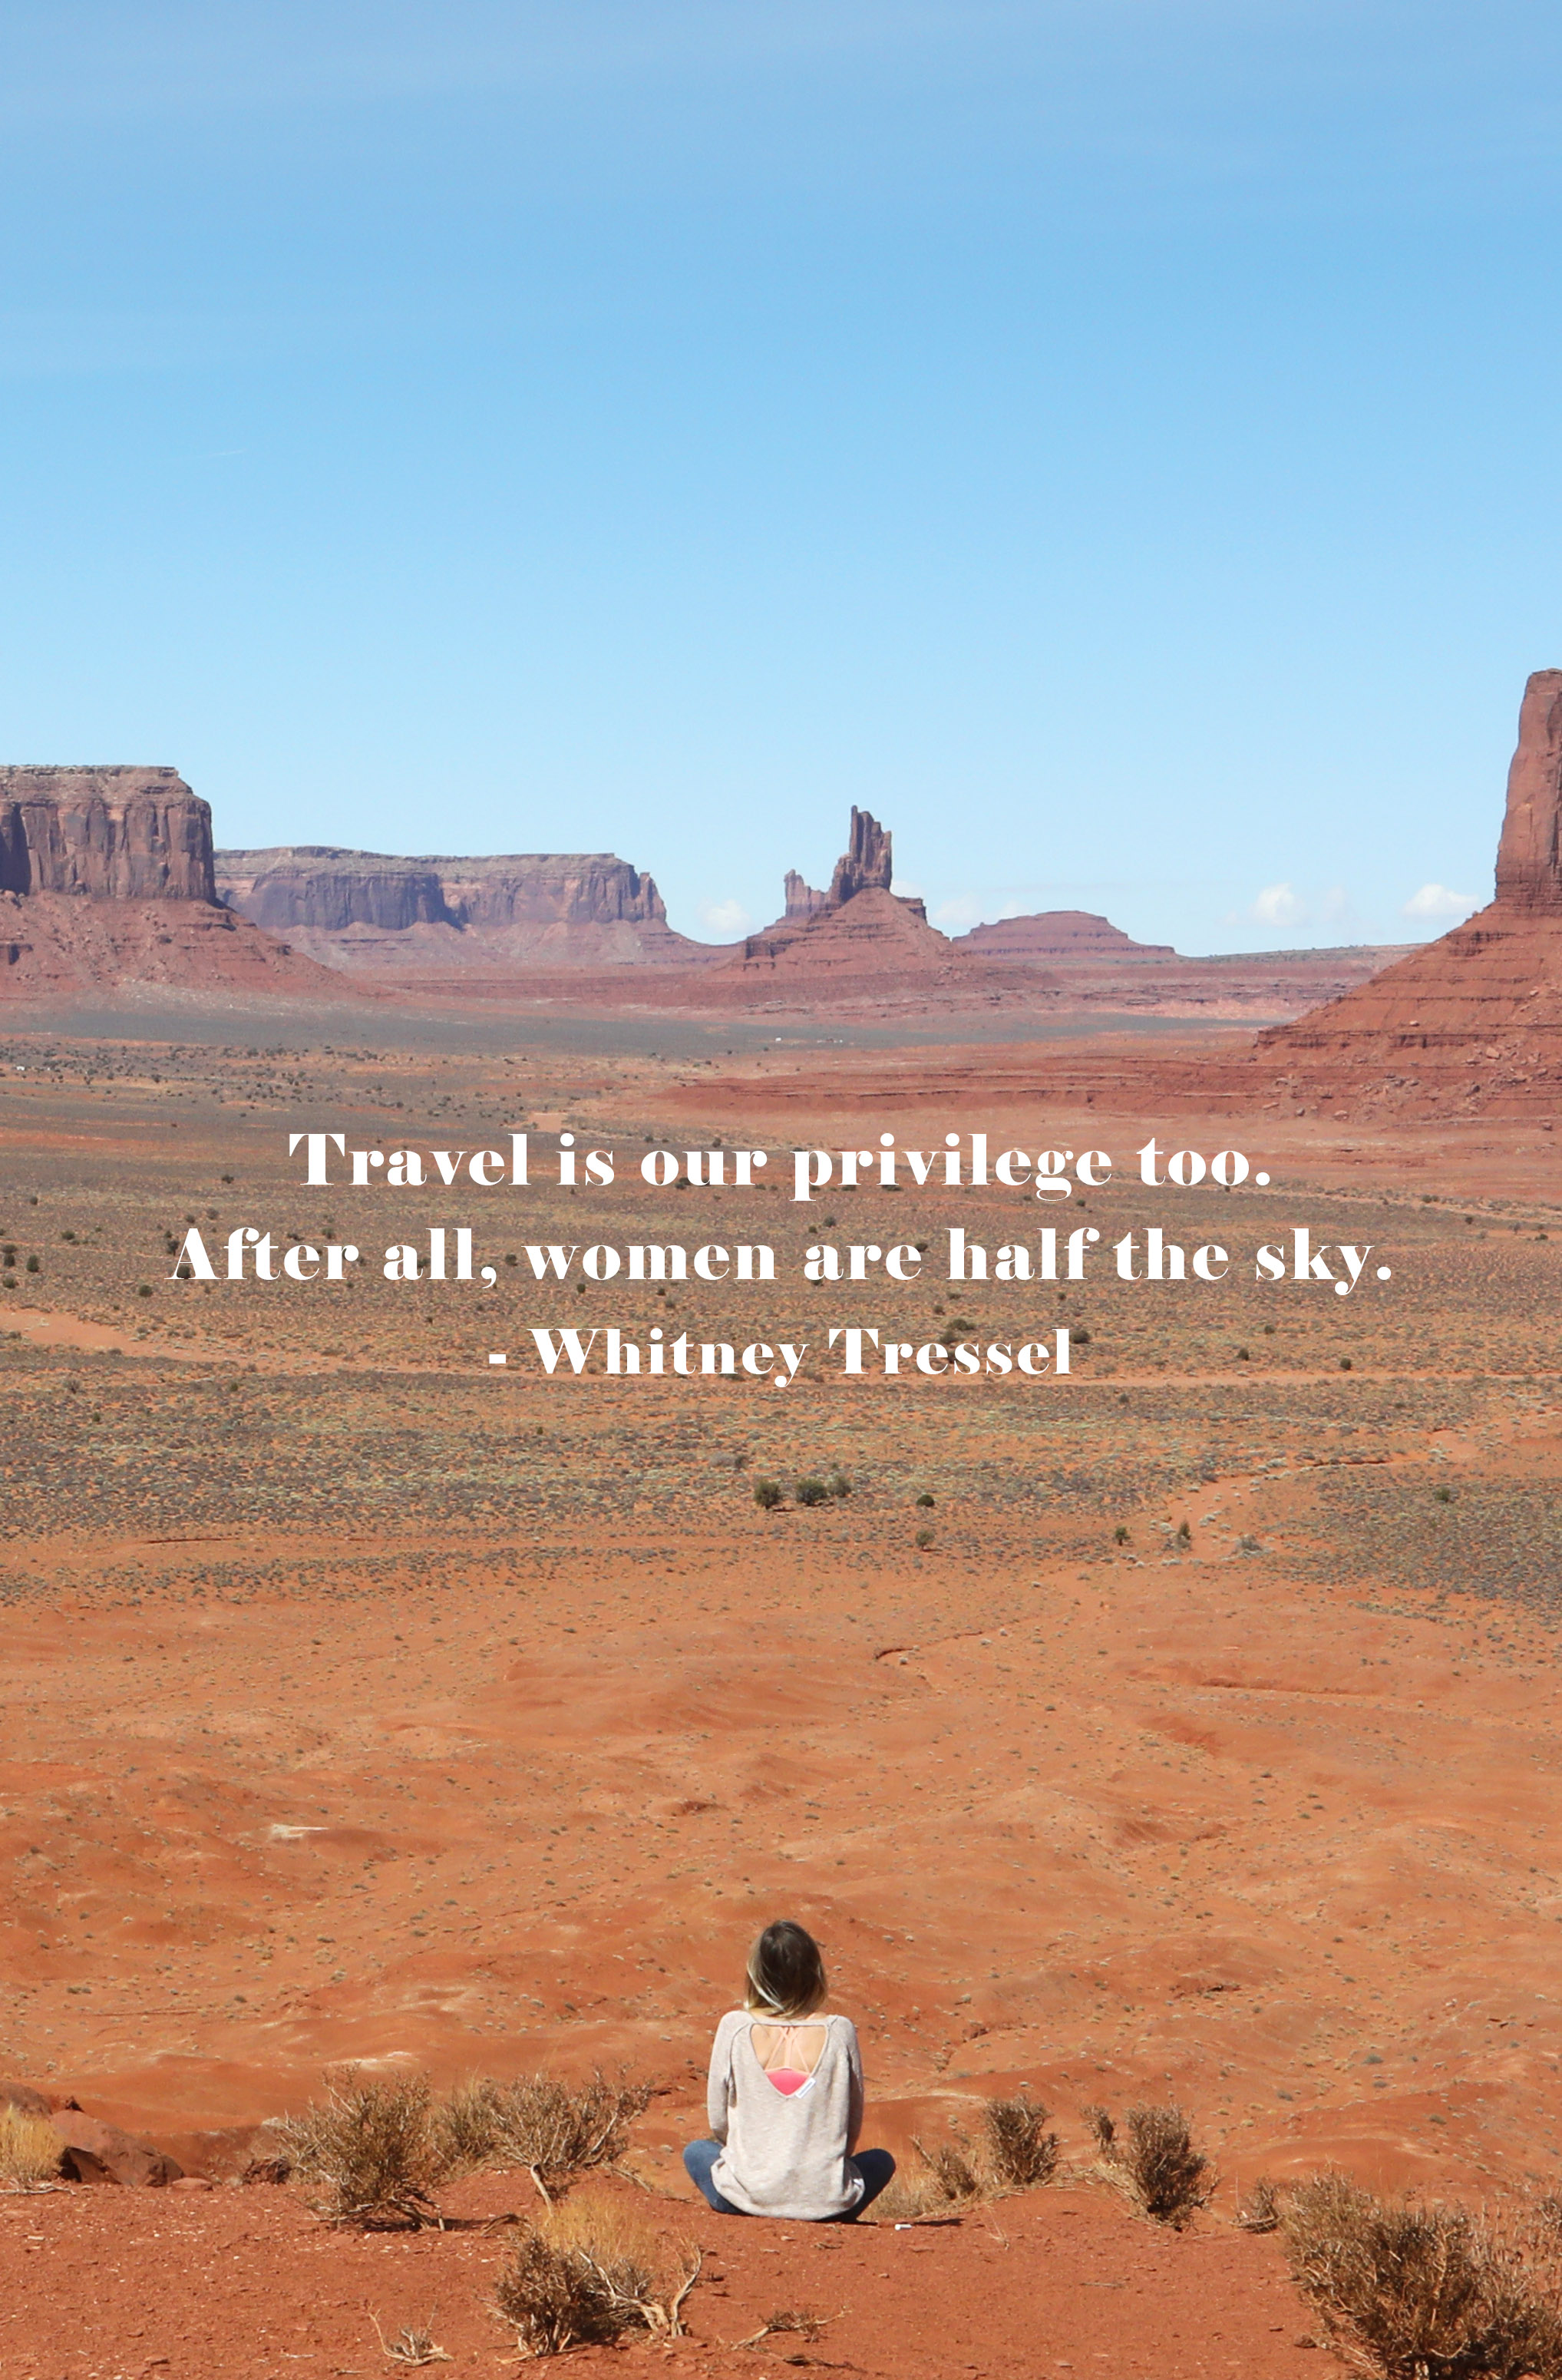 Travel is our privilege too, after all, women are half the sky.